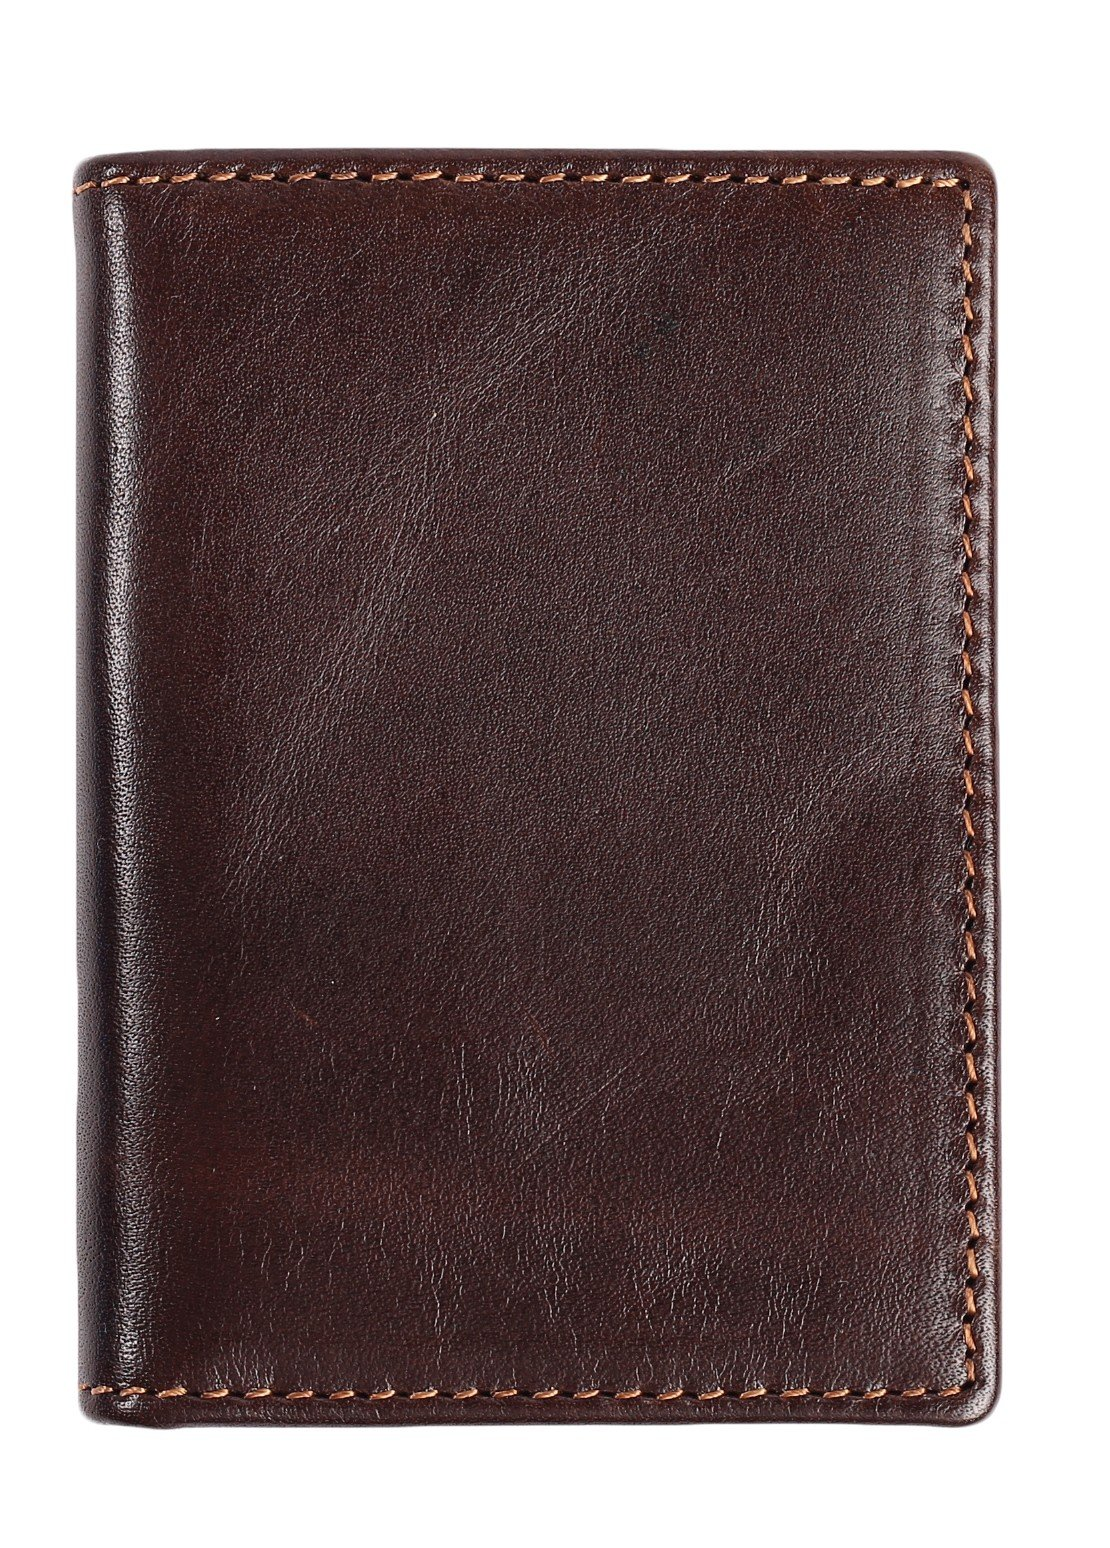 RFID Slim Wallet Men Thin Bifold Front Pocket Wallet Genuine Leather Card Holder (Coffee) by Easyoulife (Image #4)